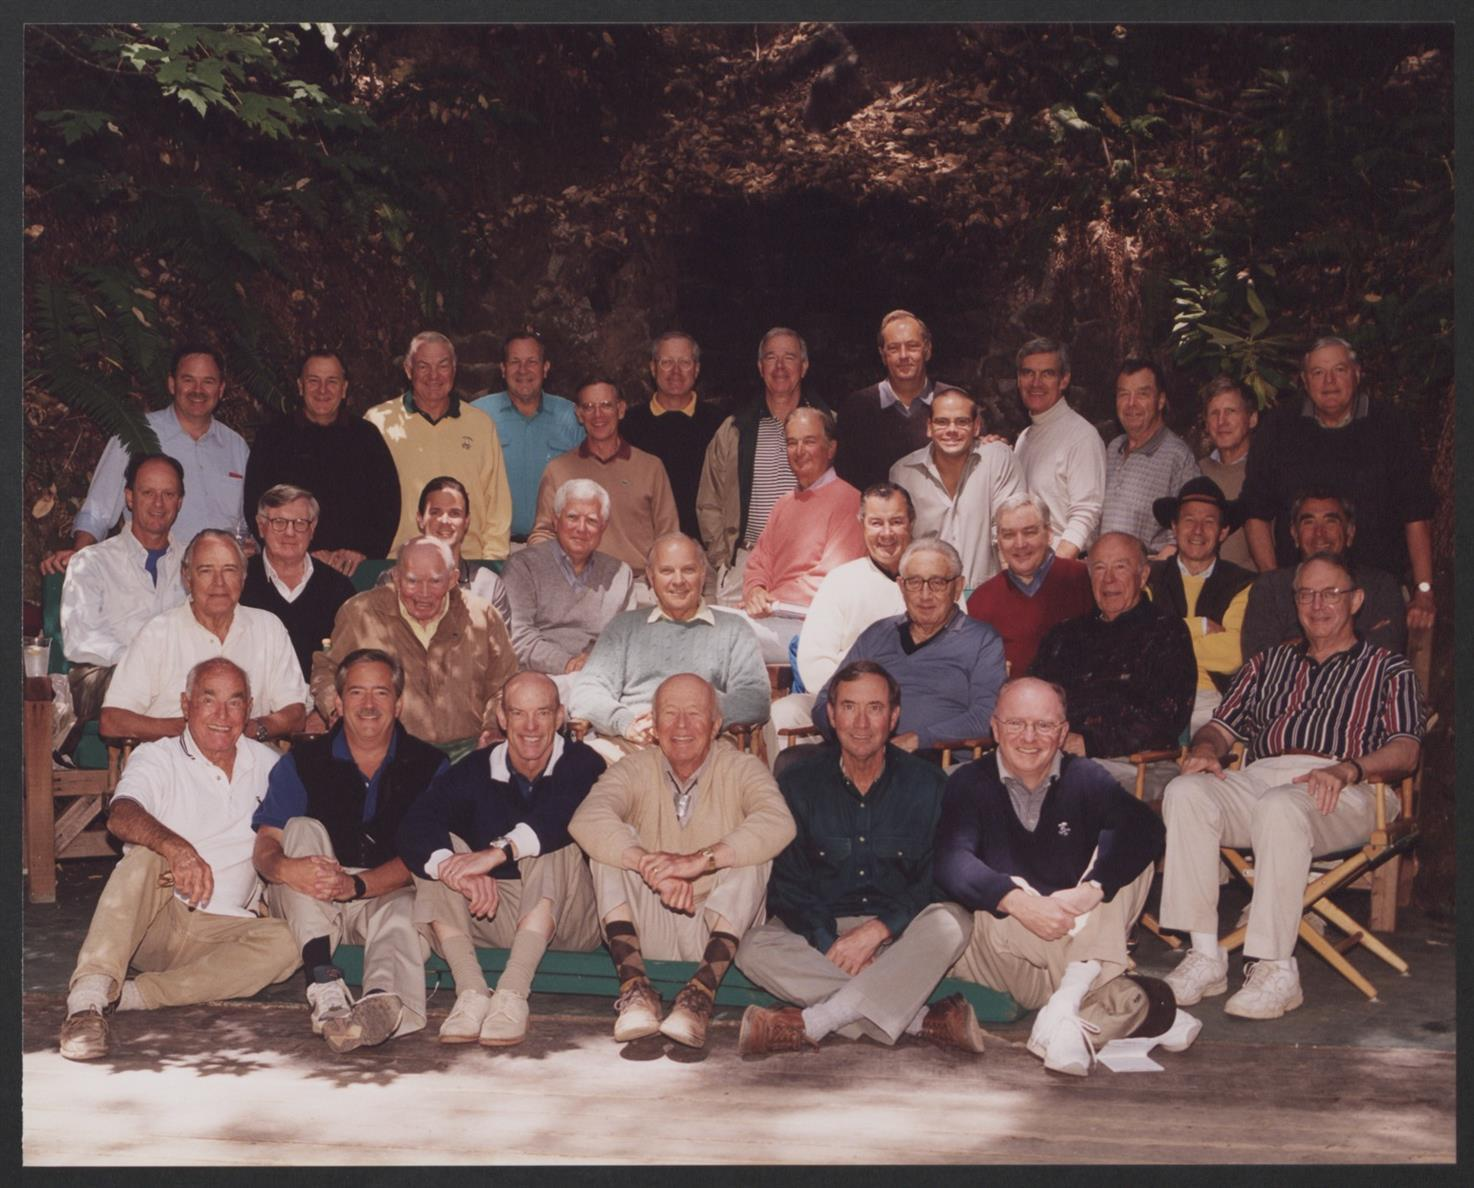 Camp Mandalay Bohemian Grove